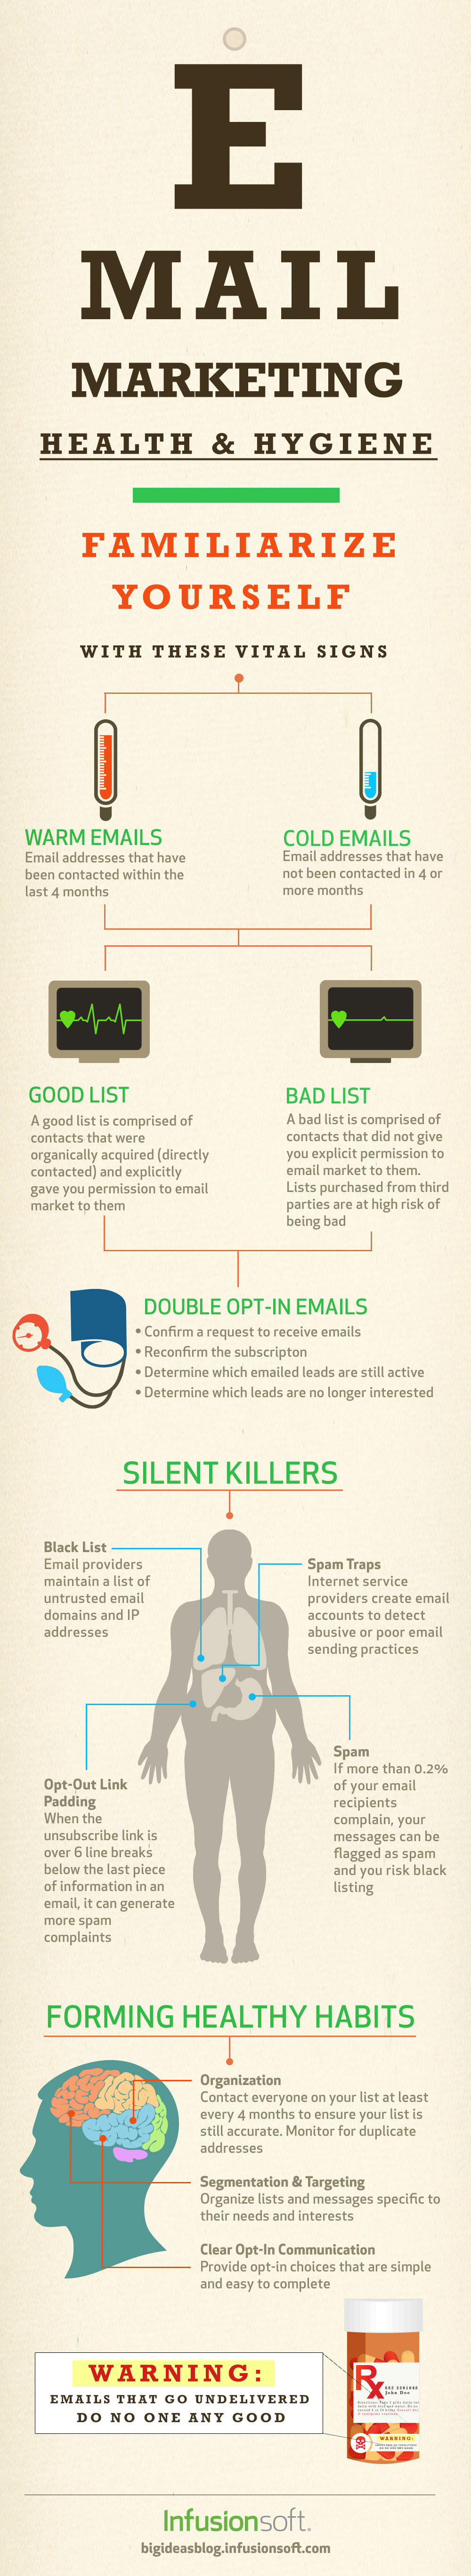 email marketing infographic.jpg